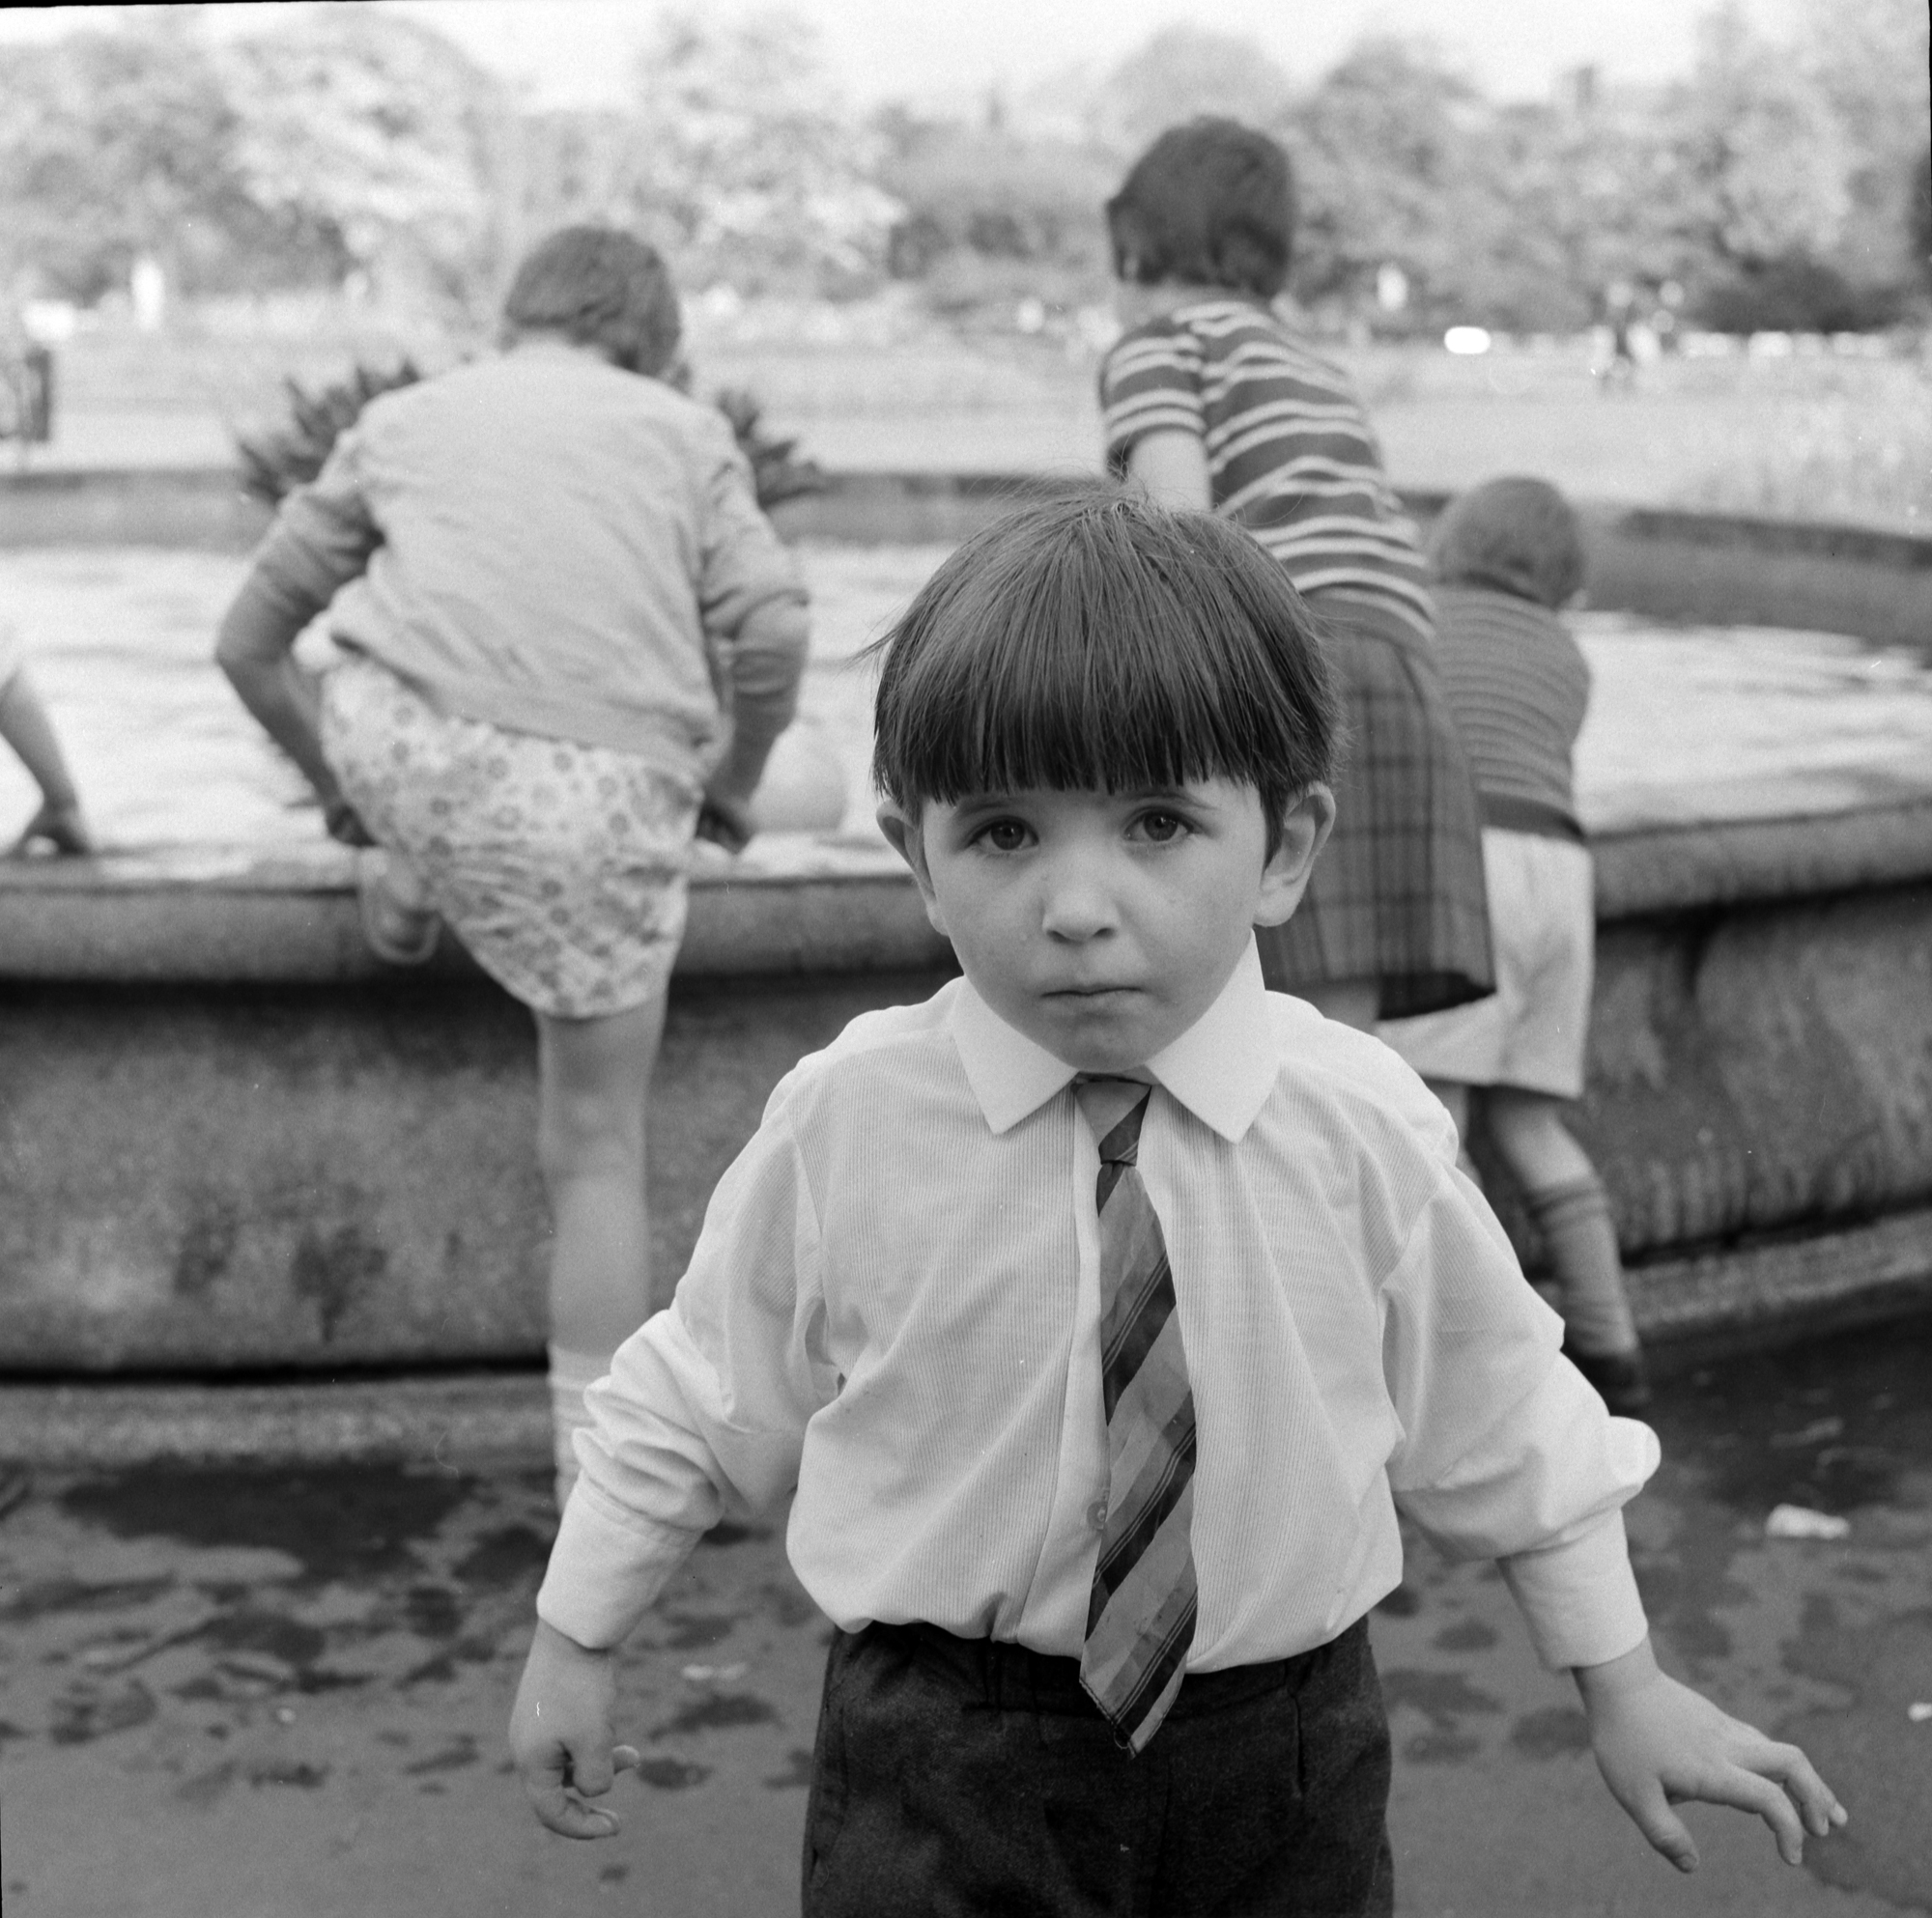 Ireland 1960s. Any of you familiar with St. Stephen's Green in Dublin will recognise the fountain behind this little chap. It's the one where the water emerges from bulrushes. Photographer: Elinor Wiltshire Date: 1964